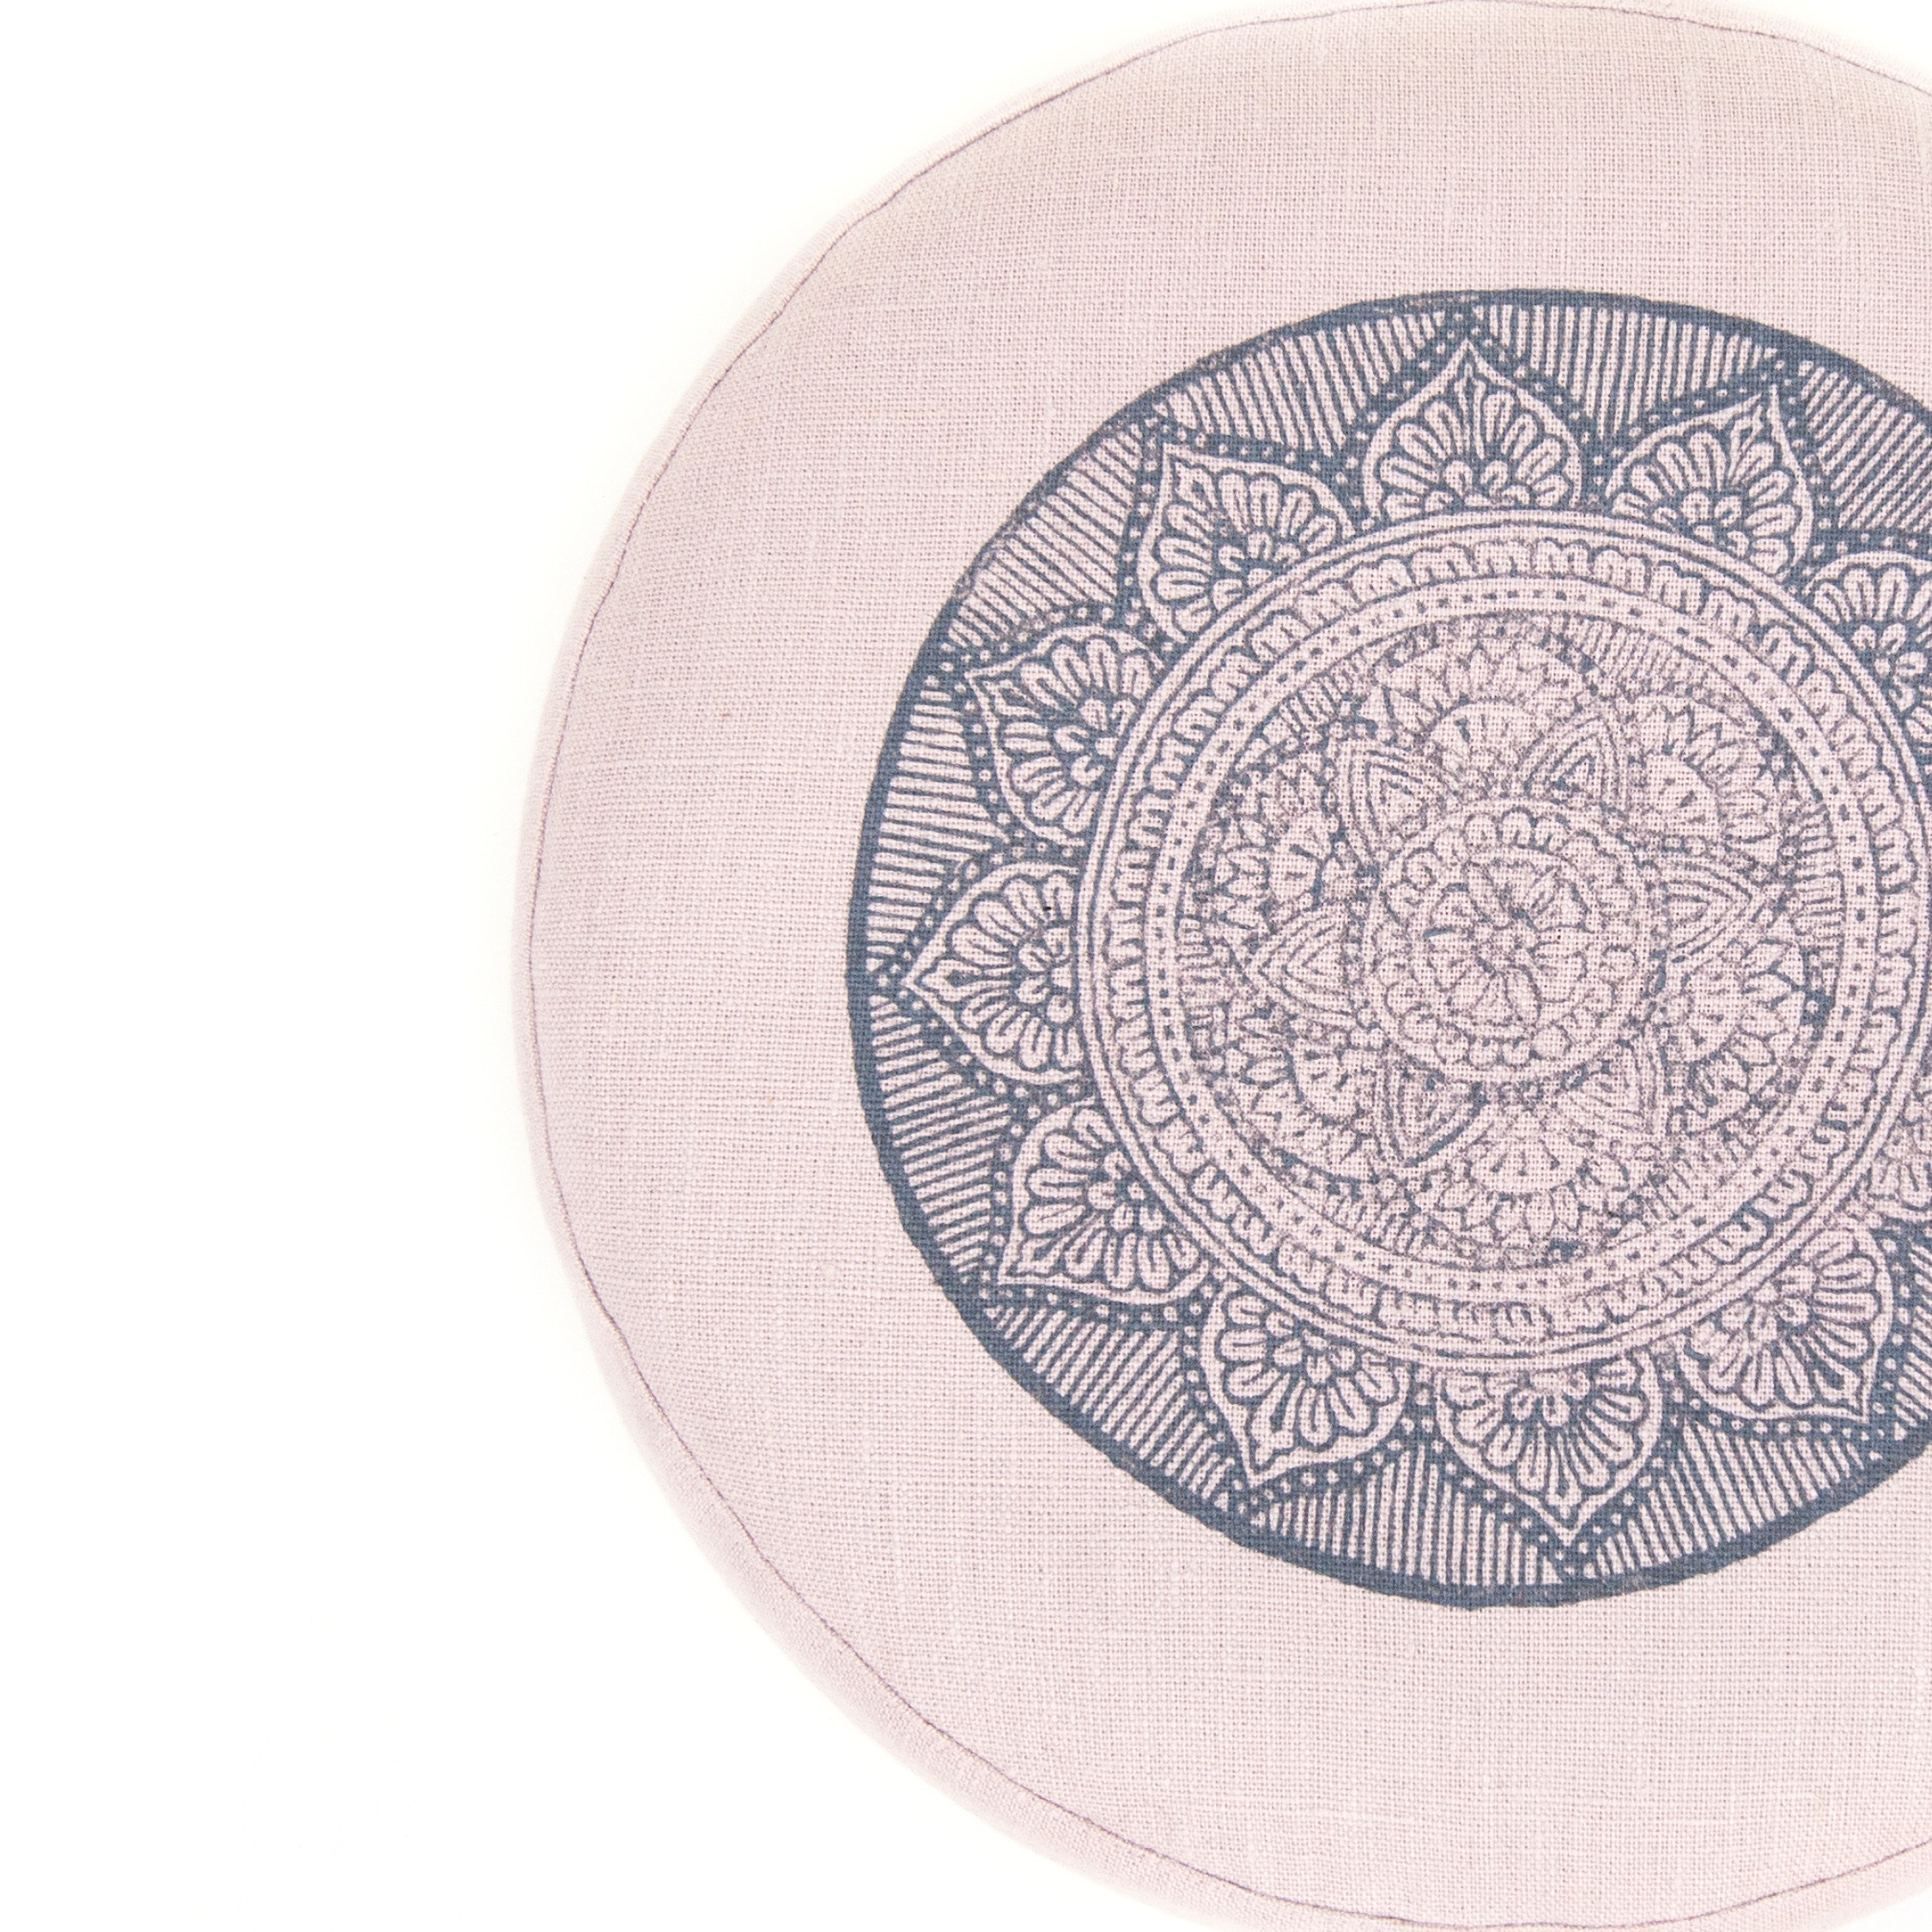 a top view of the light pink mandala meditation cushion by Pure Prana Label